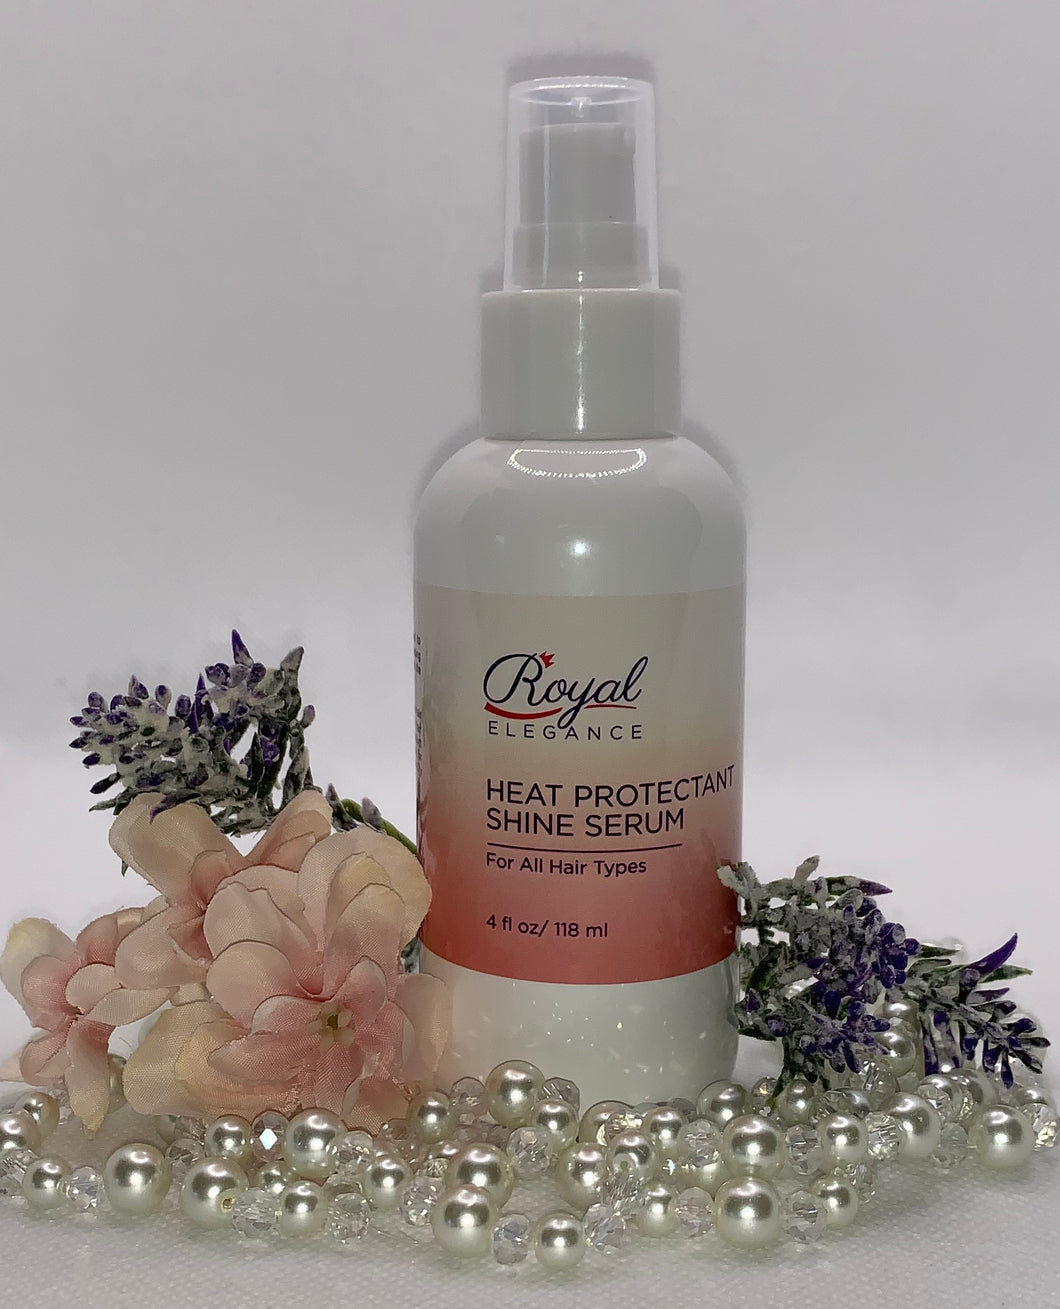 HEAT PROTECTANT SHINE SERUM